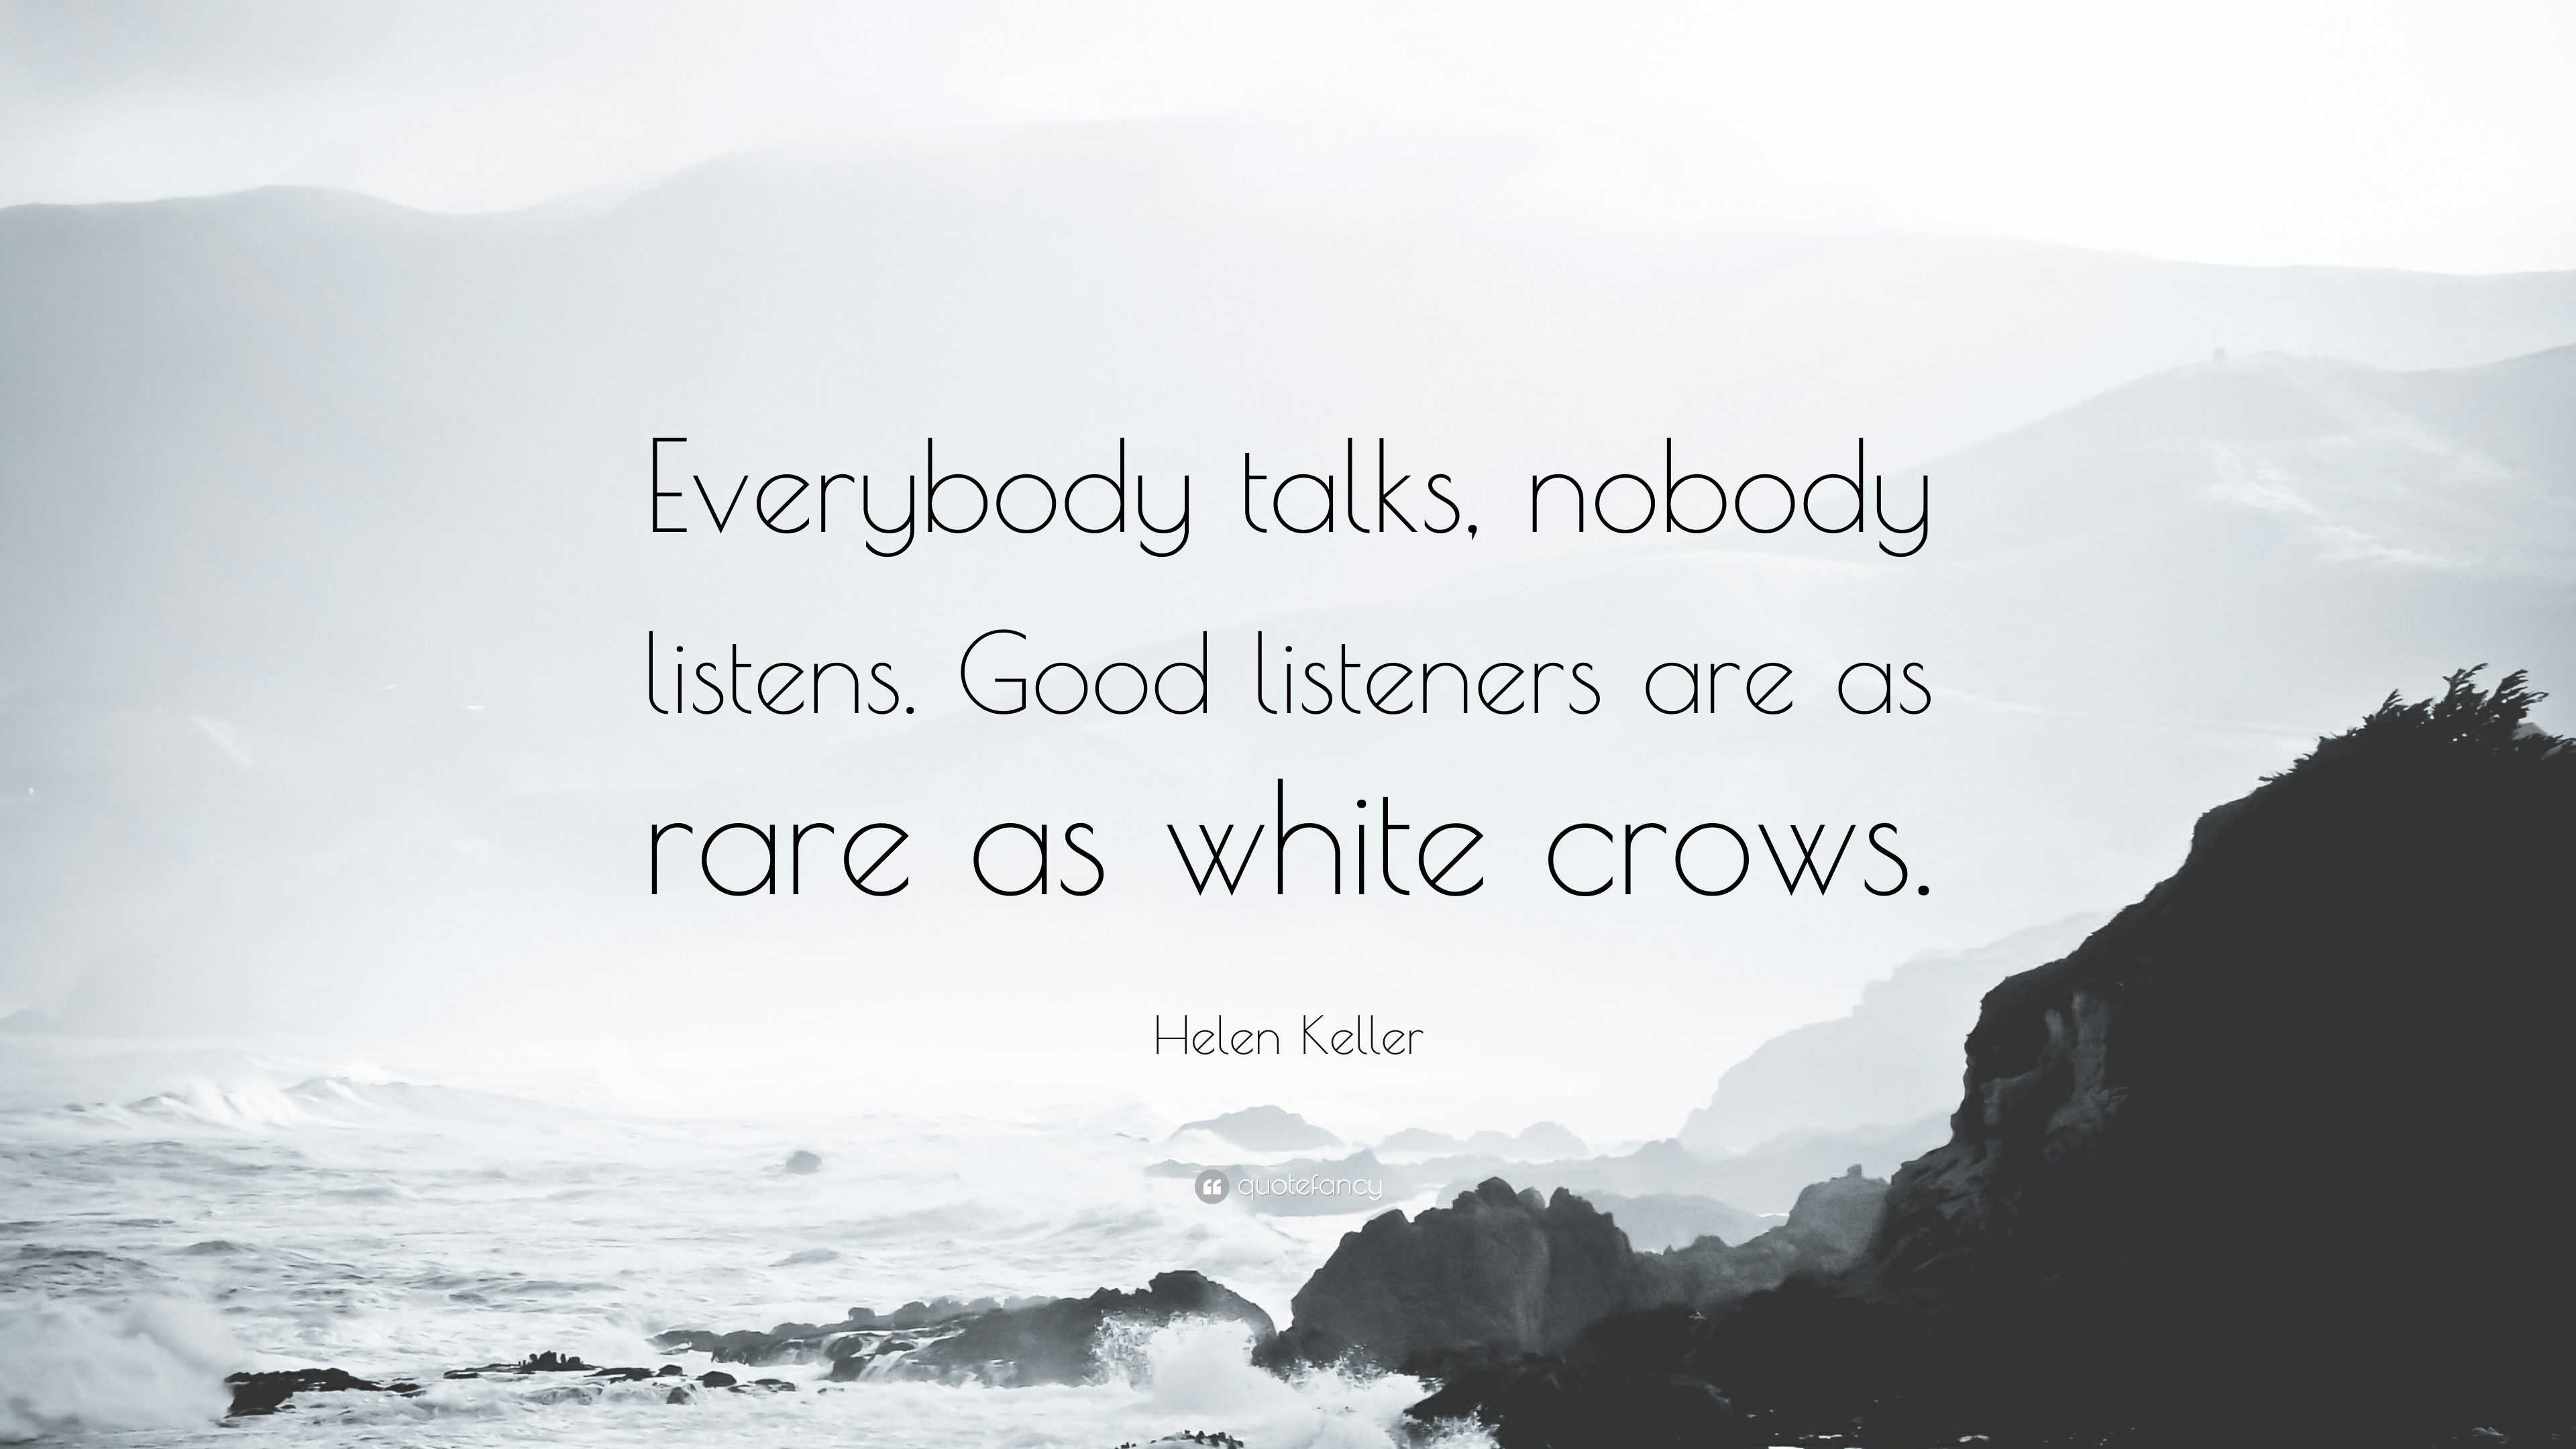 Helen keller quote everybody talks nobody listens good listeners helen keller quote everybody talks nobody listens good listeners are as rare thecheapjerseys Image collections